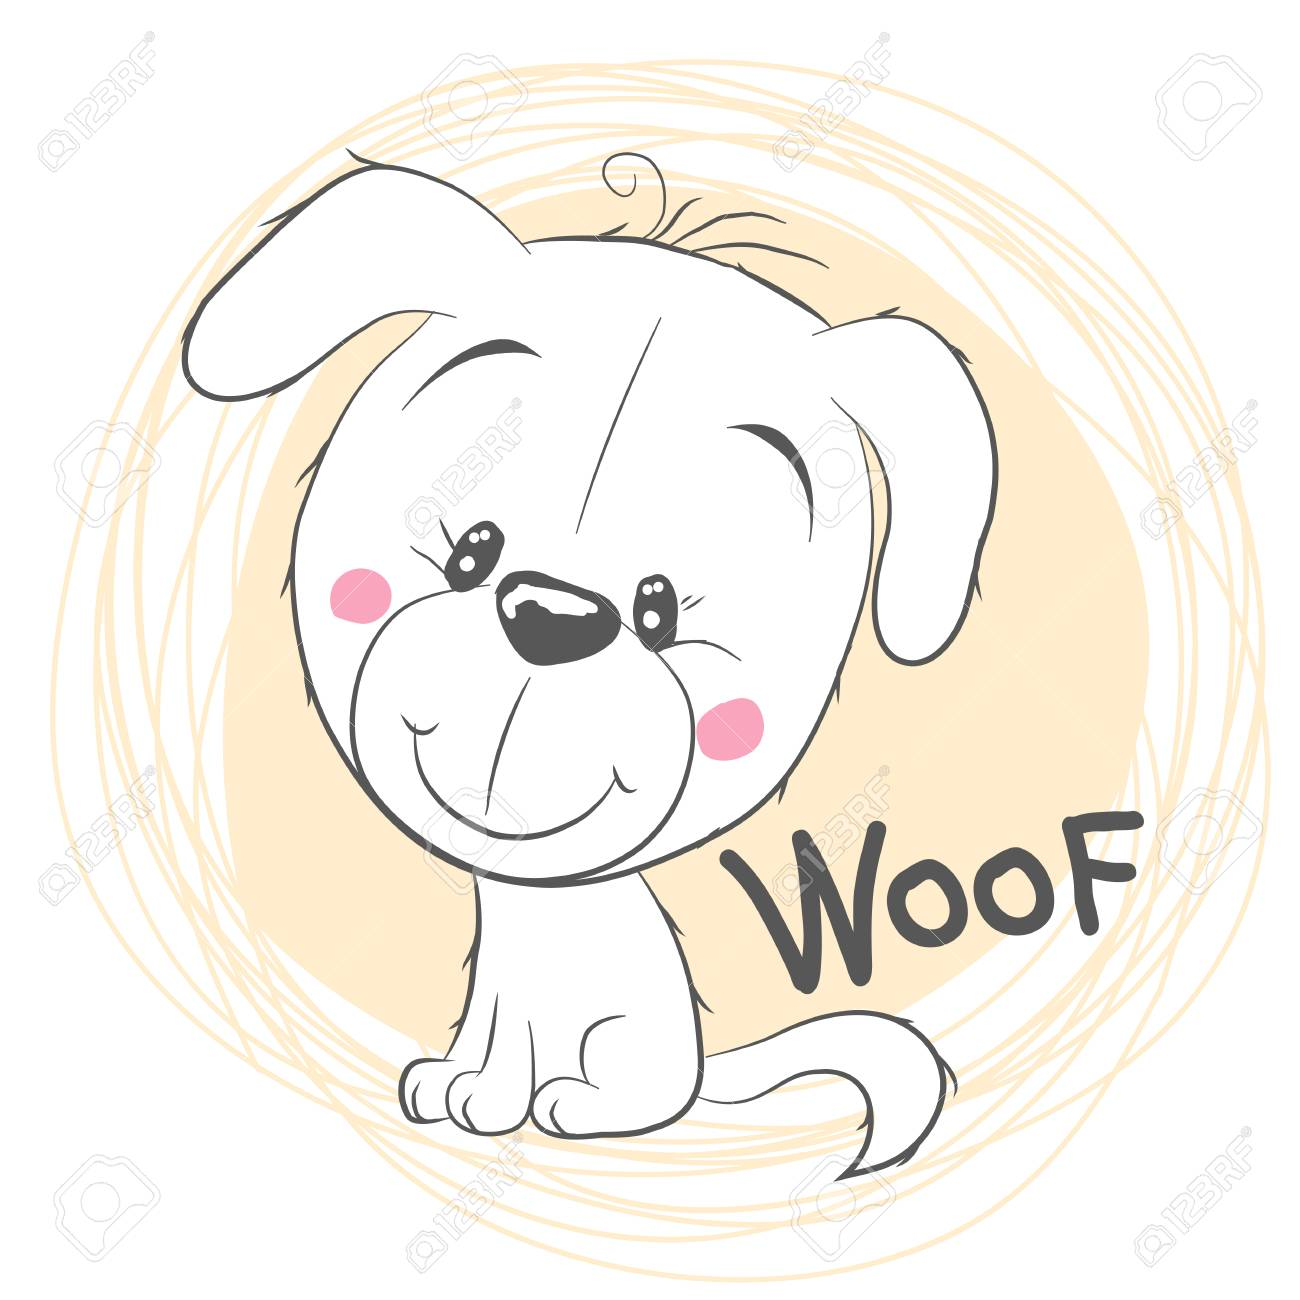 Cute Cartoon White Puppy On A Yellow Background Royalty Free Cliparts Vectors And Stock Illustration Image 102724529